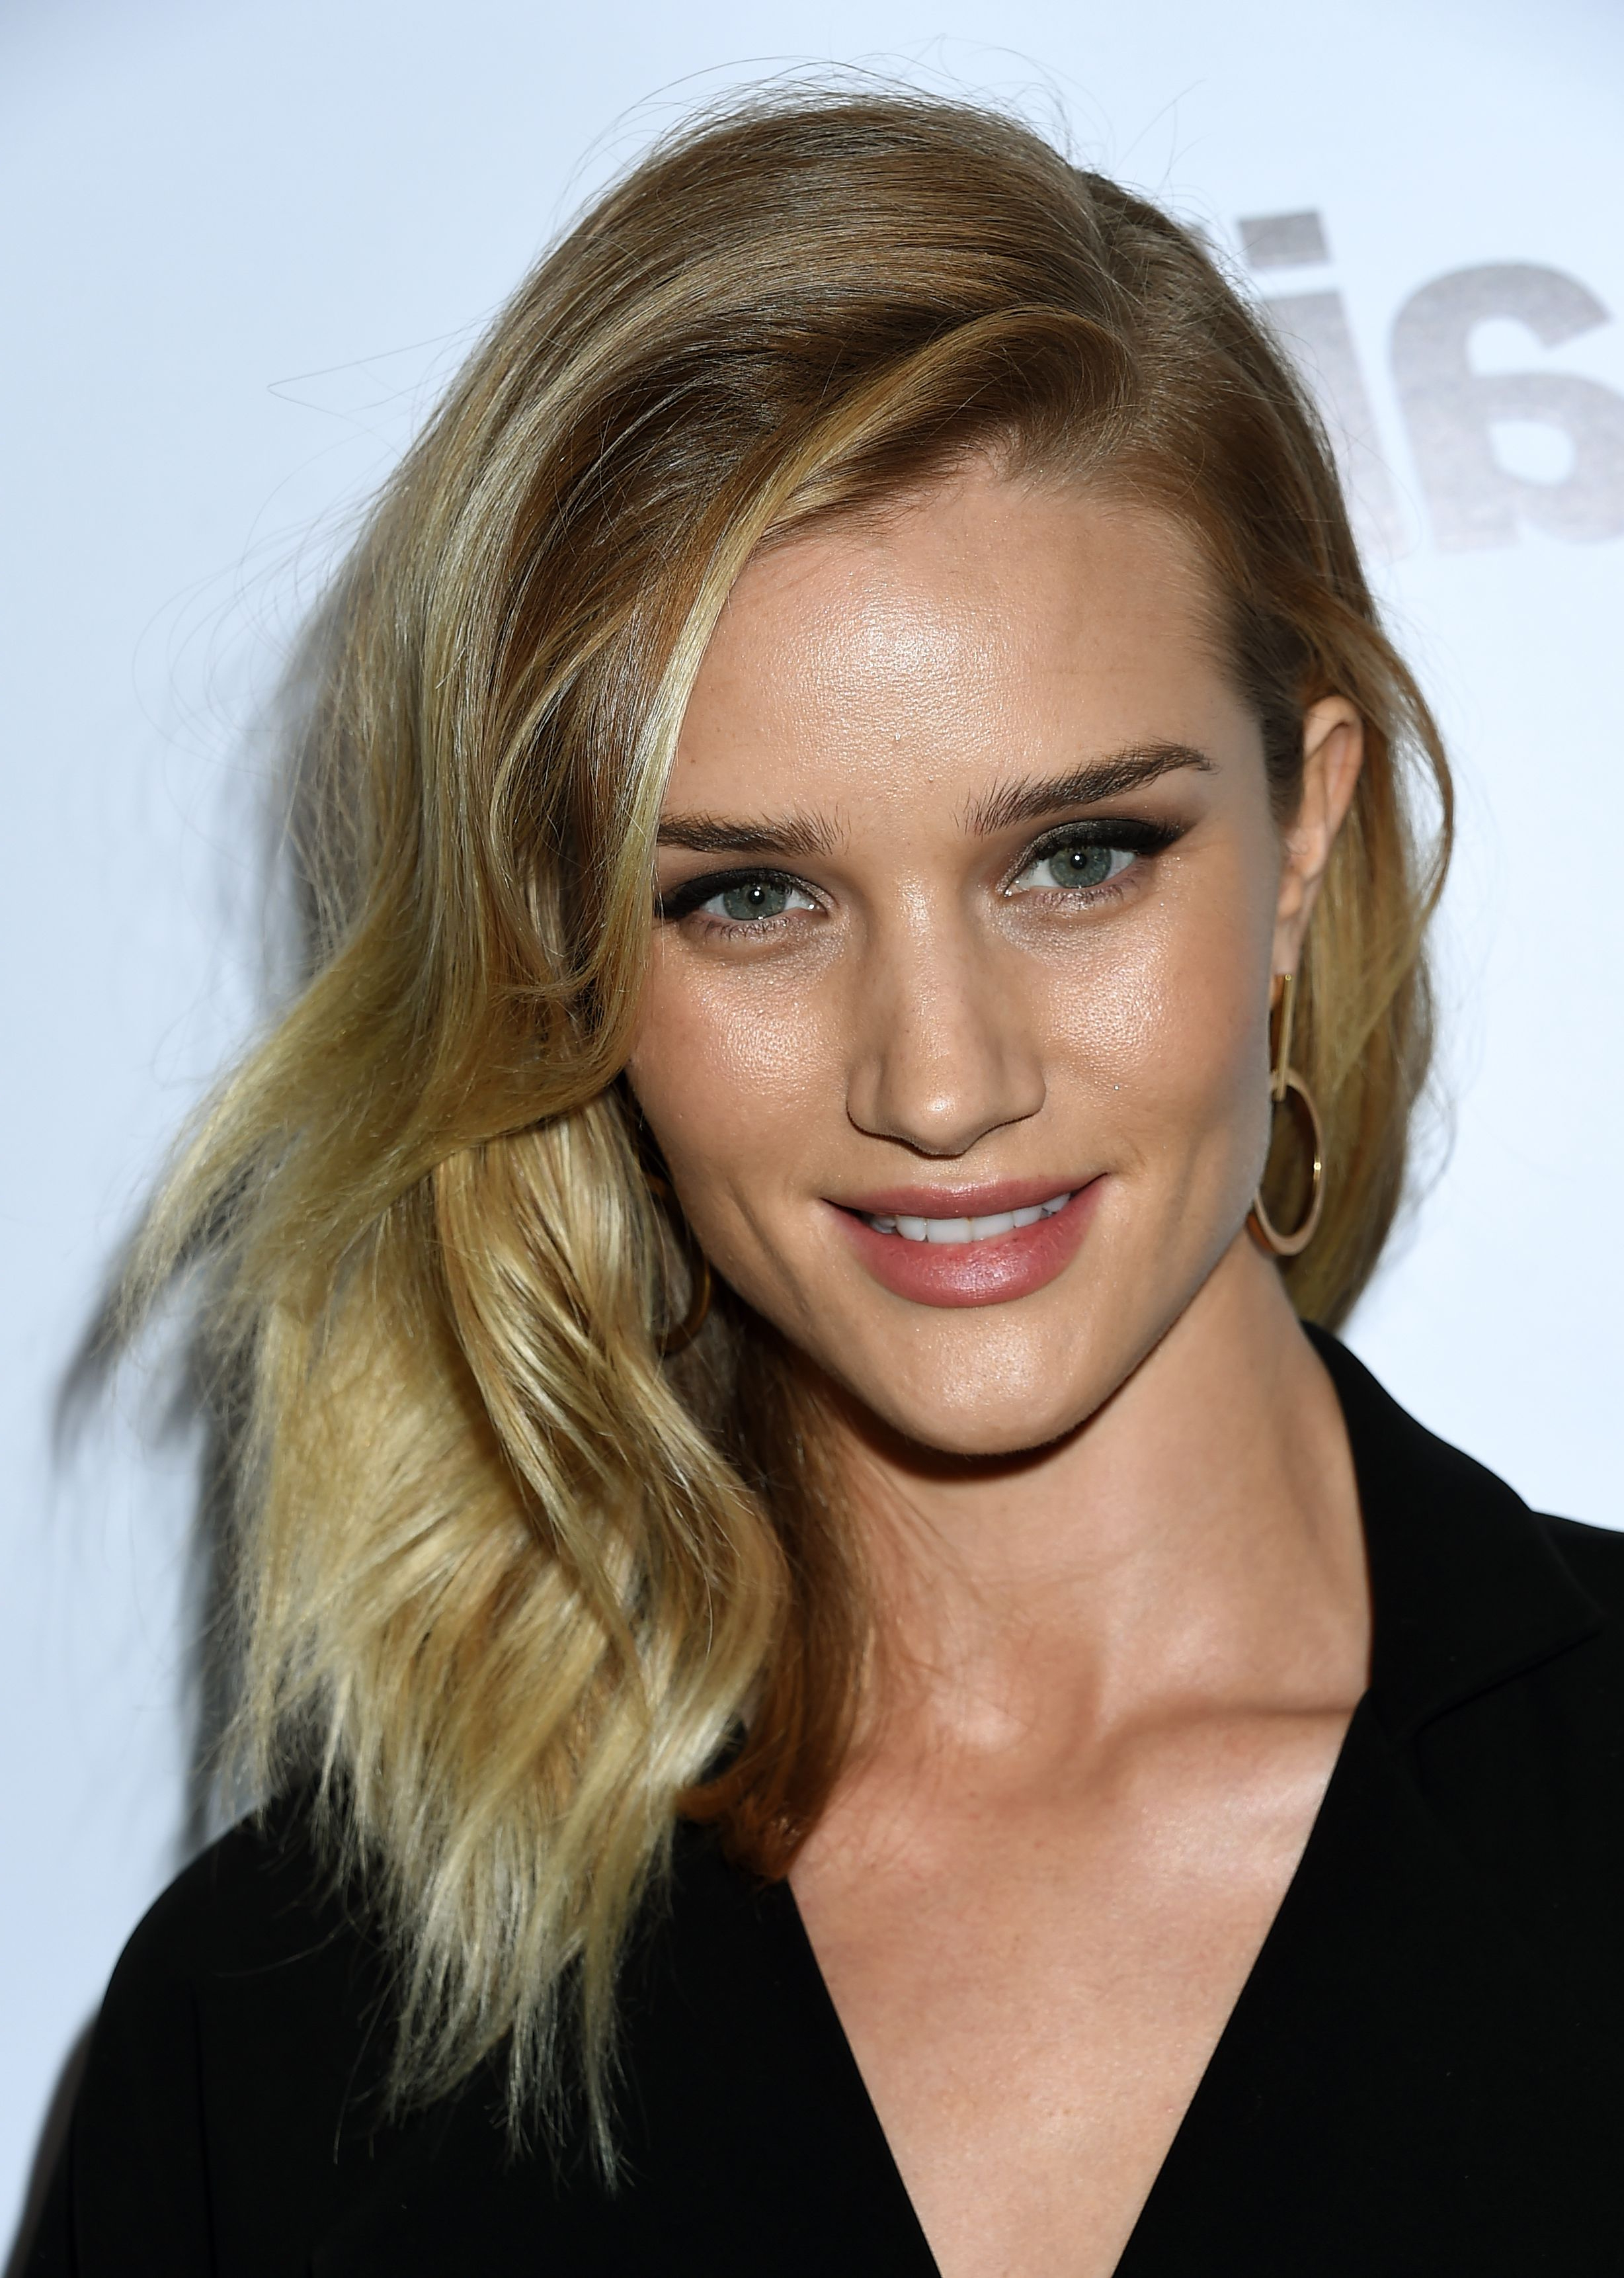 The 13 Best Hairstyles For Square Faces Pertaining To Short Haircuts For Large Foreheads (View 19 of 25)